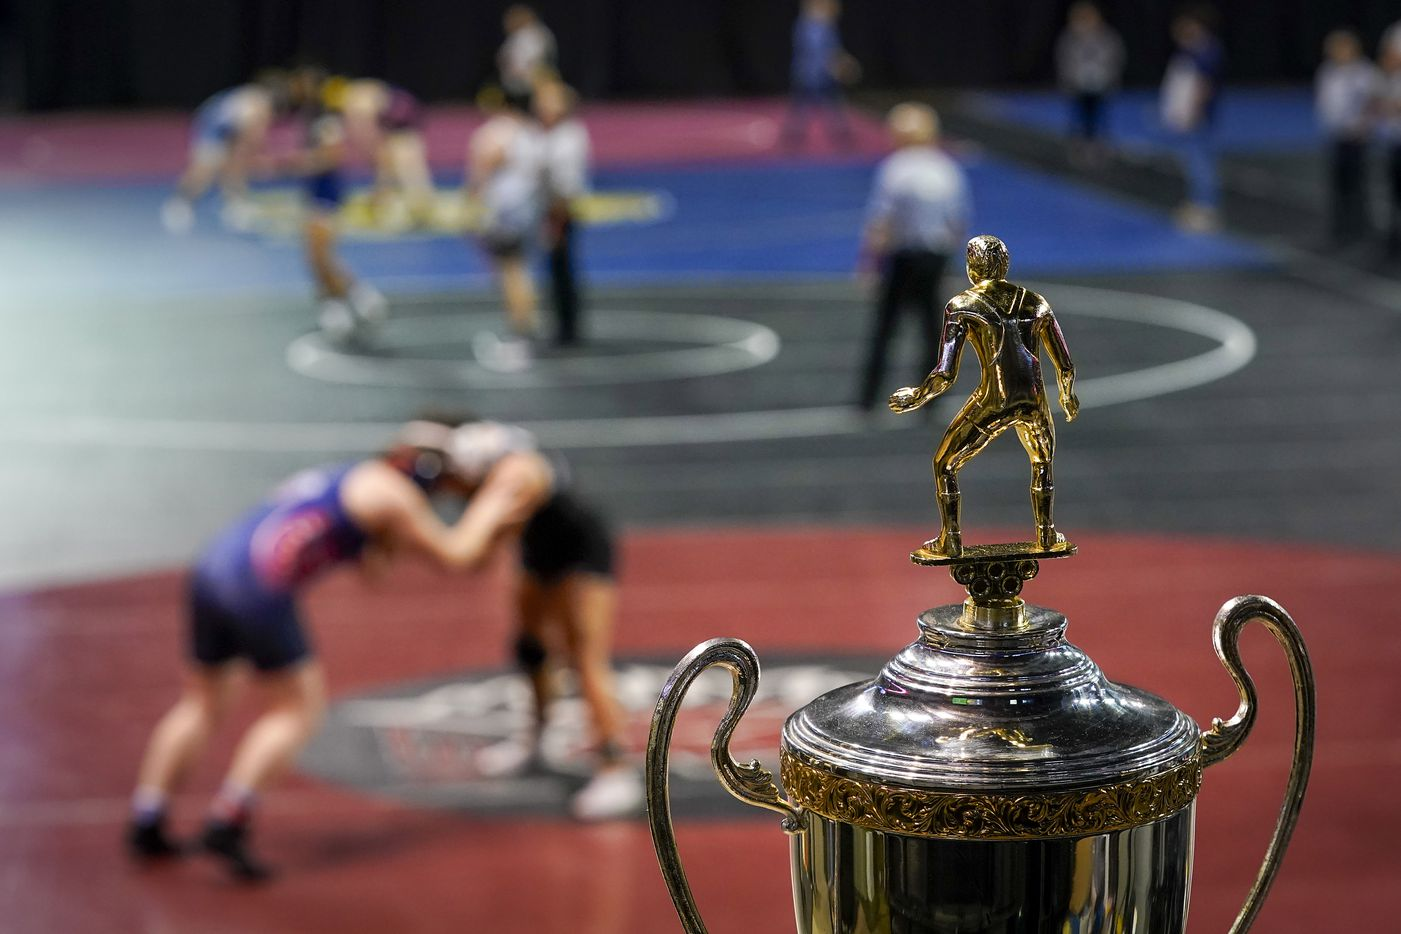 The championship trophy is seen as wrestlers compete during the NCWA national championships at the Allen Events Center on Friday, March 13, 2020, in Allen, Texas.